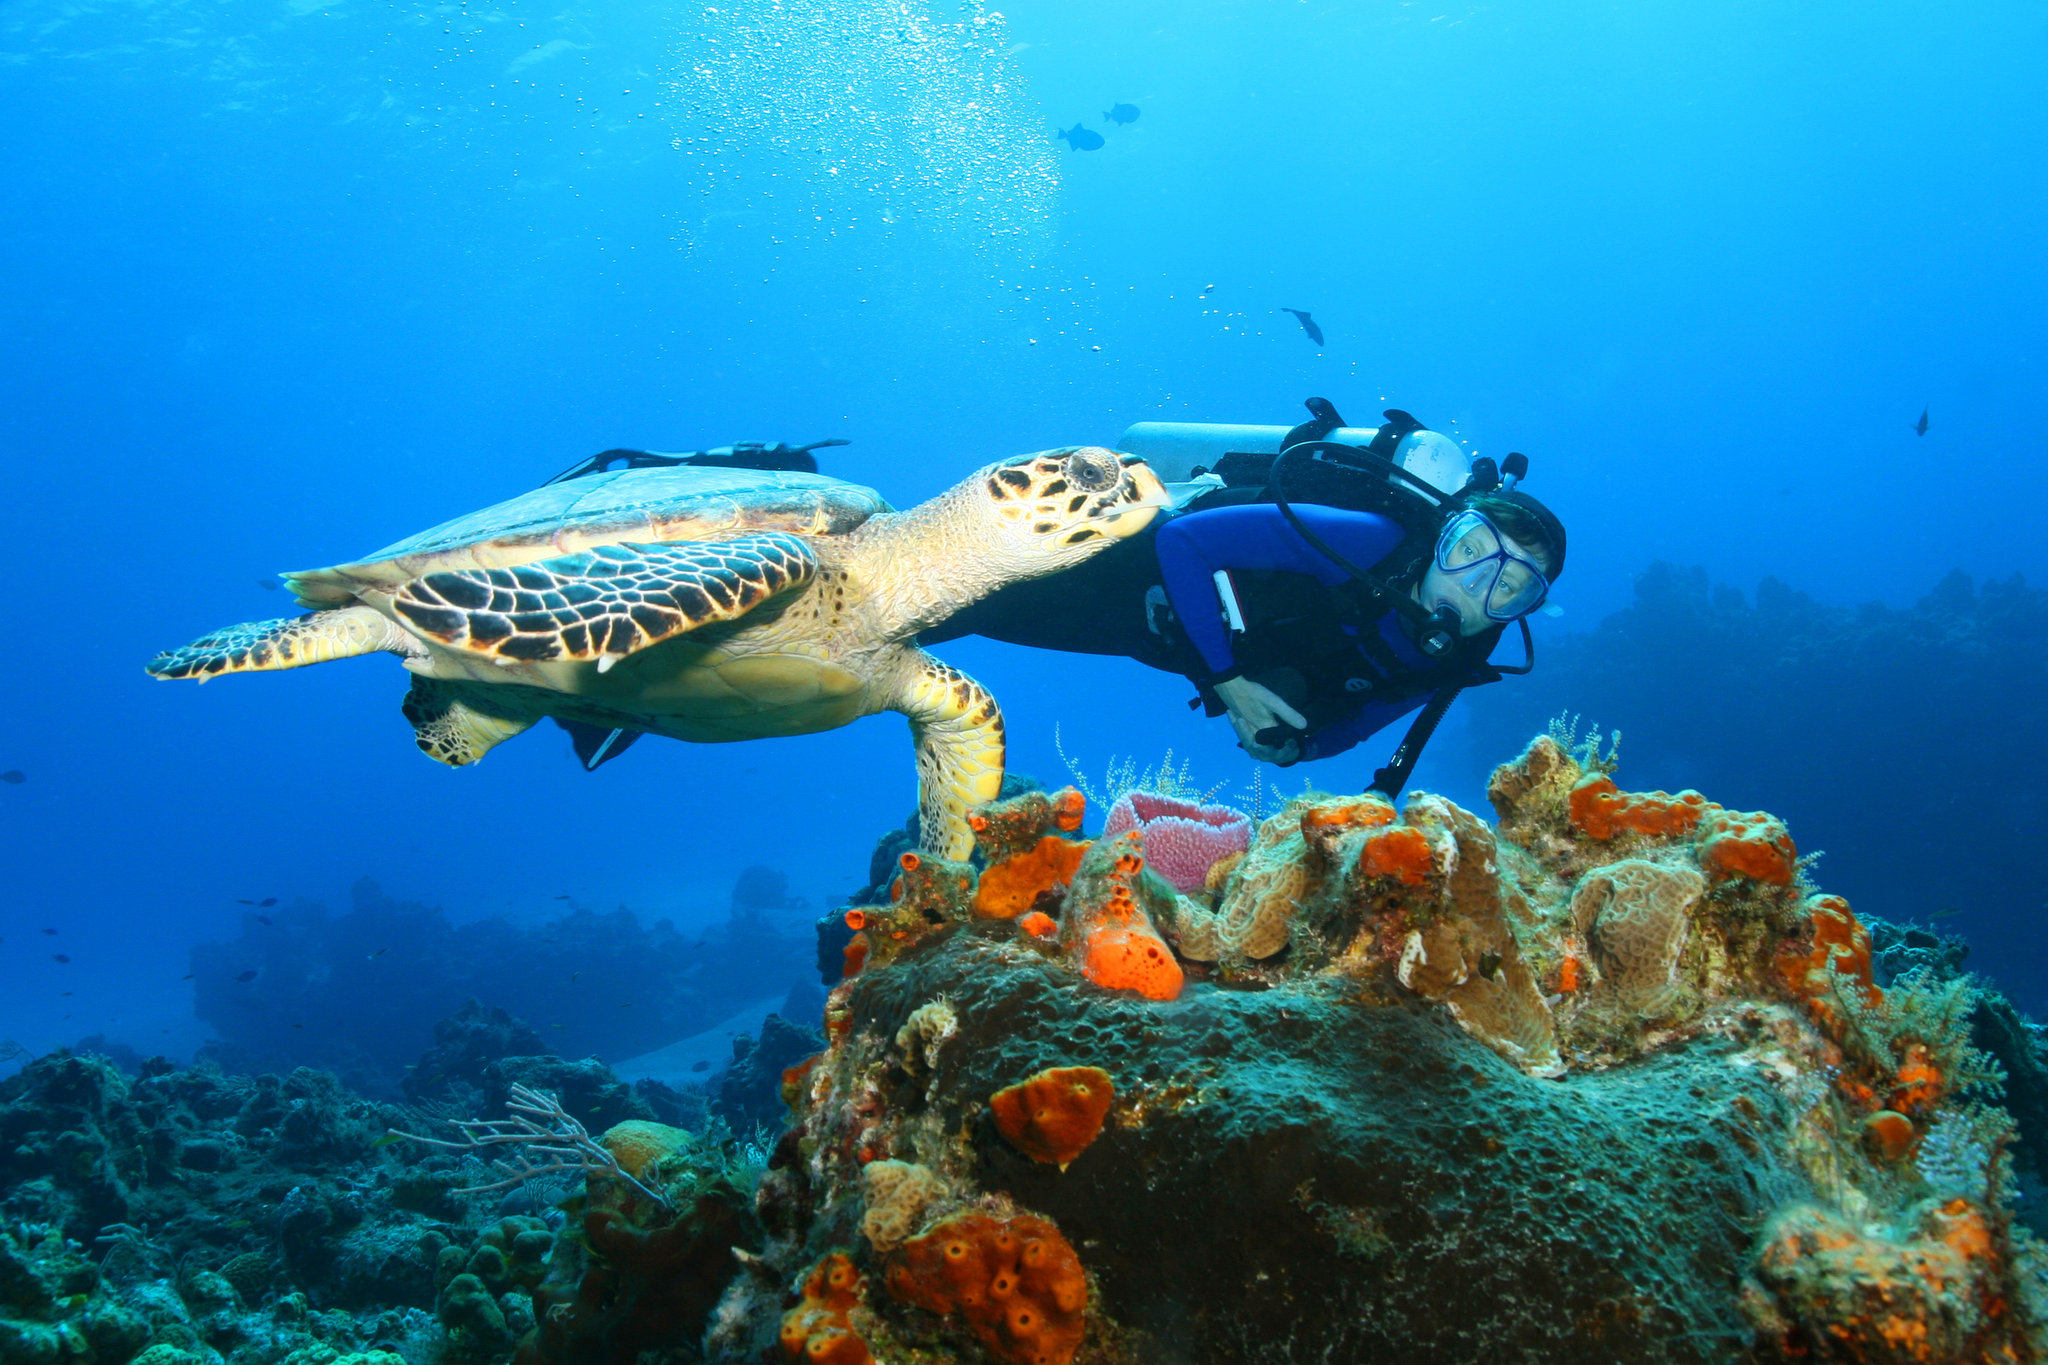 Scuba Diver and Sea Turtle Cozumel